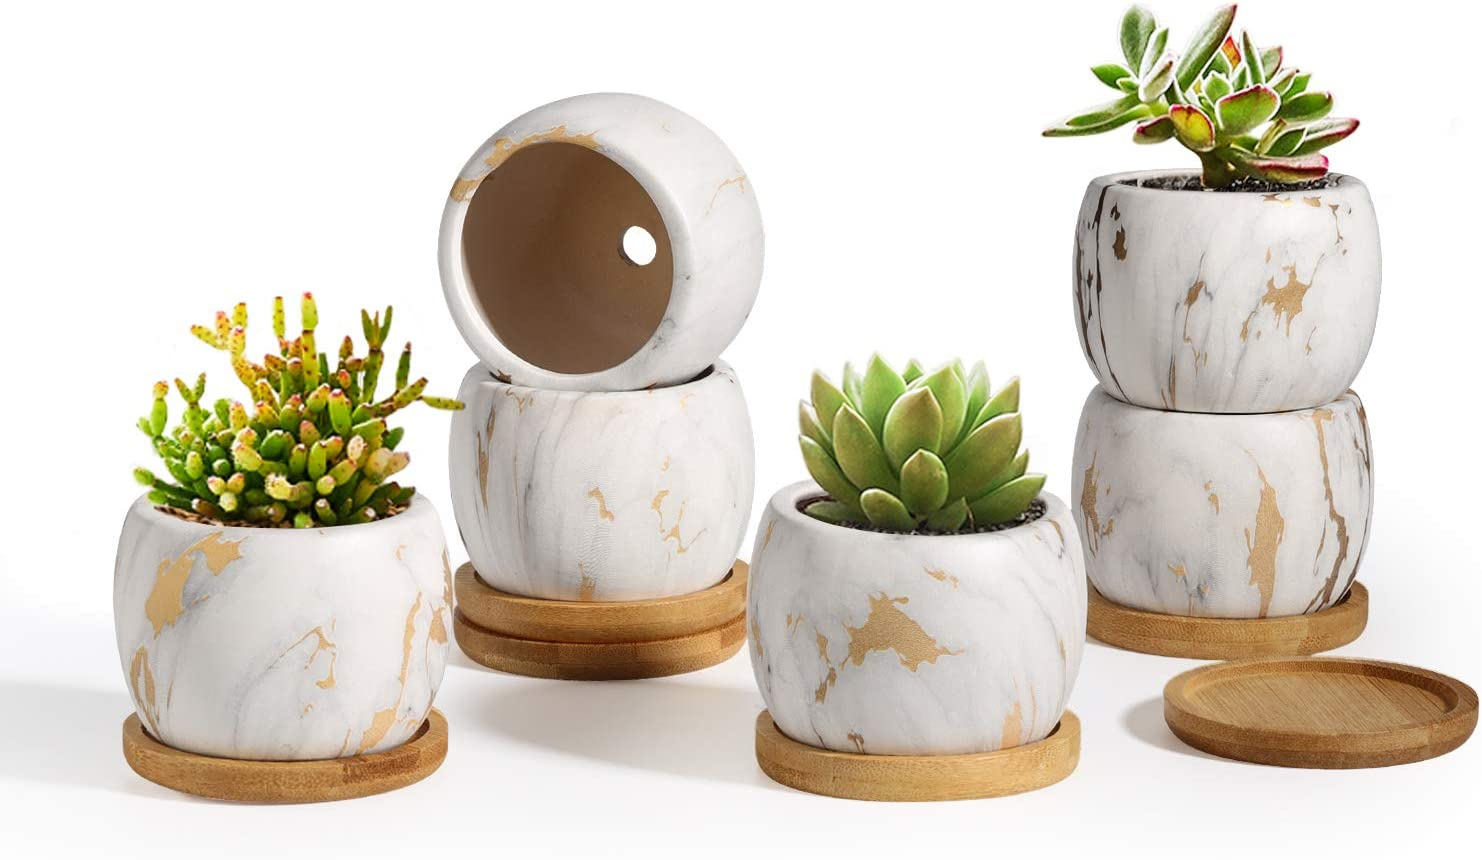 T4U Ceramic Succulent Pots 2.5 Inch Round Marbleize Set of 6 with Trays, White and Gold Modern Small Succulent Planter with Drainage, Porcelain Herbs Cactus Container for Home and Office Decor